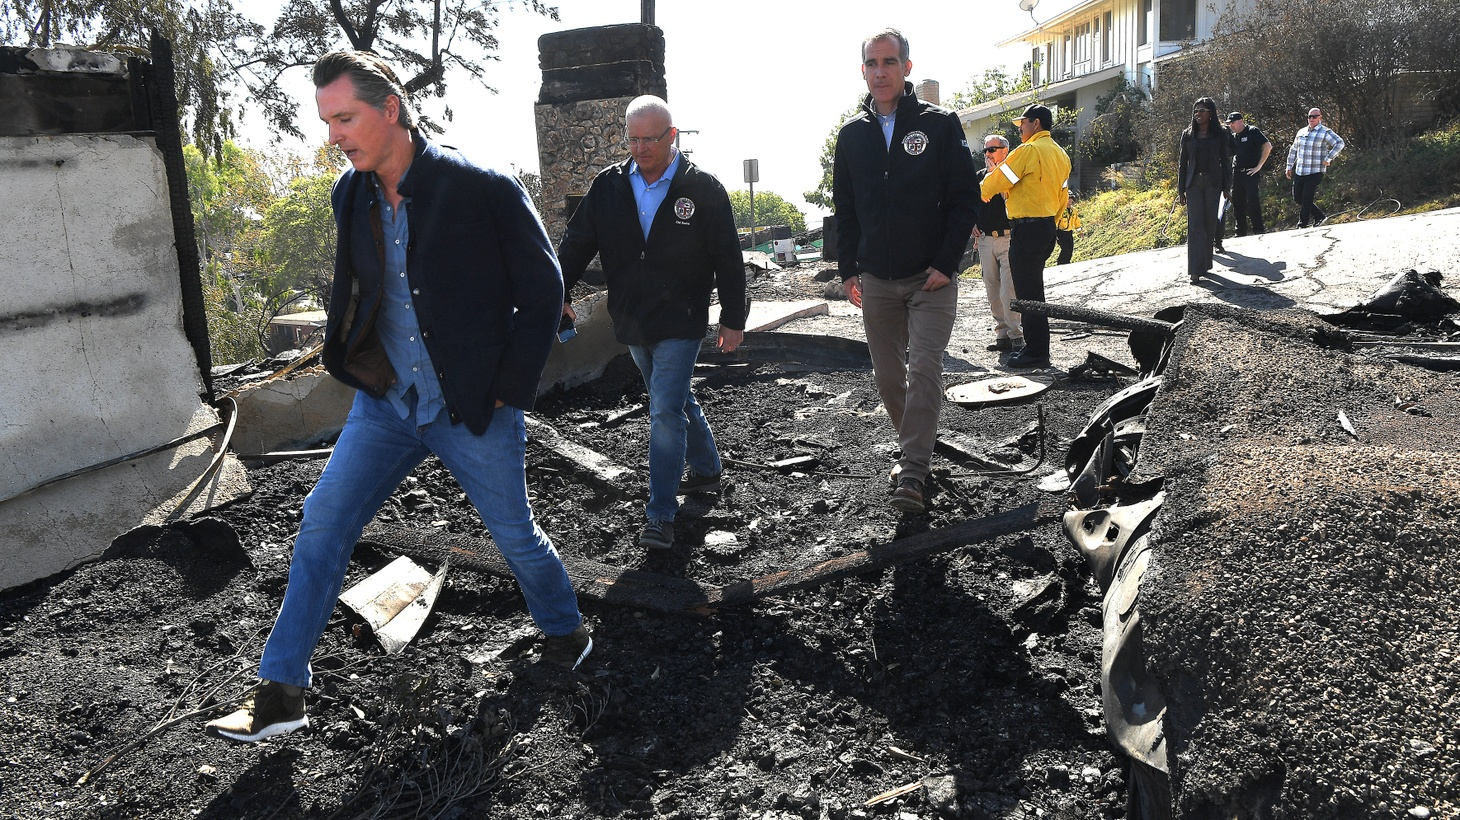 California Governor Gavin Newsom, L.A. City Councilman Mike Bonin and L.A. Mayor Eric Garcetti, view a burned home along Tigertail Road in Brentwood, California October 29, 2019.